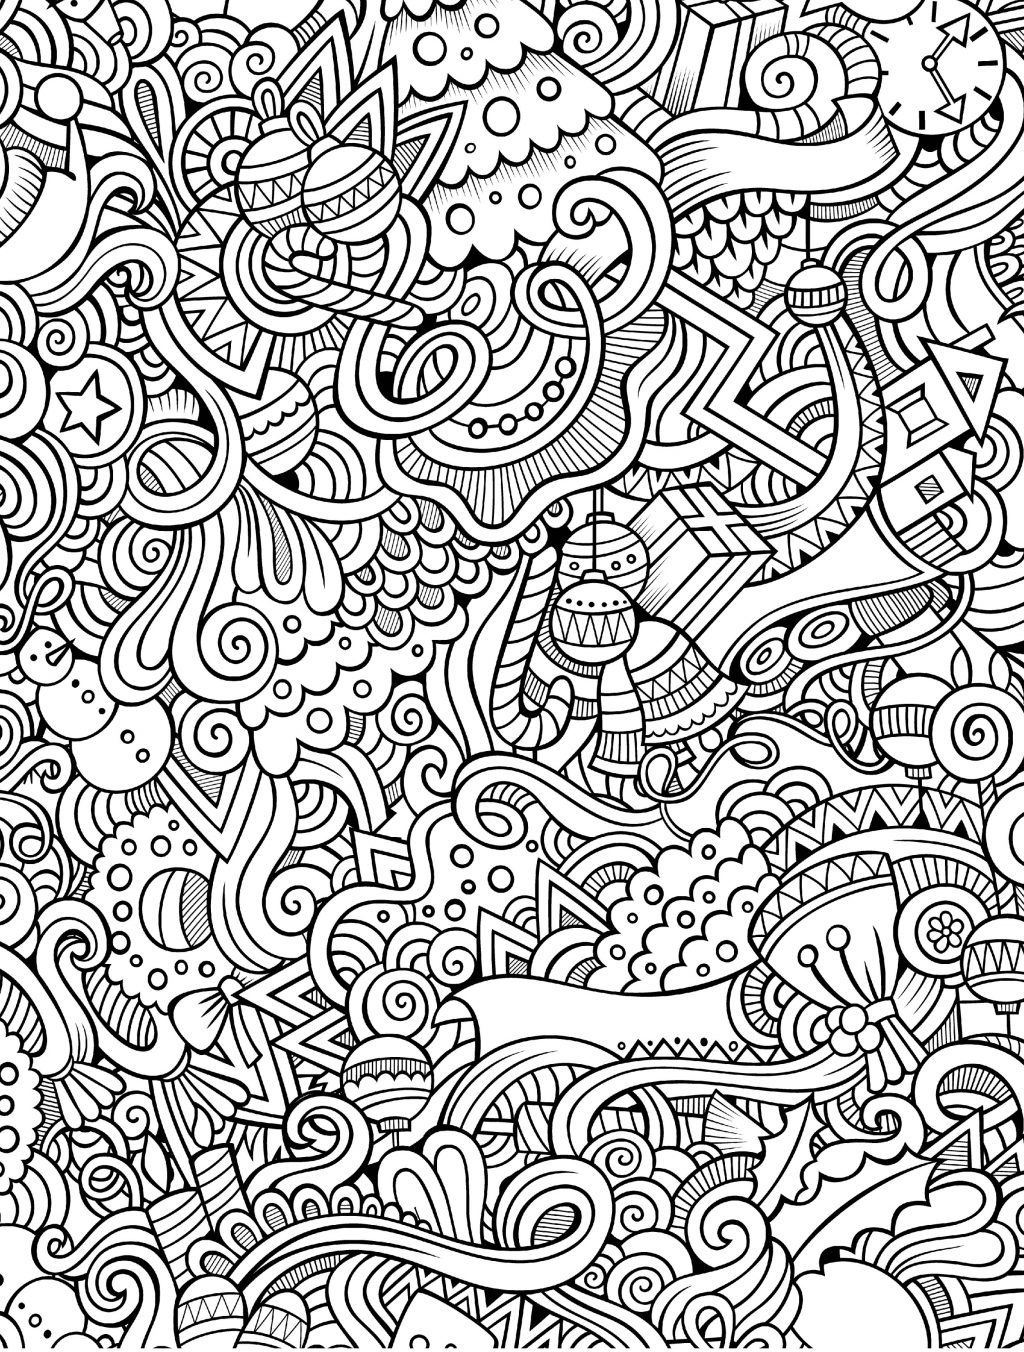 Coloring Ideas : Coloring Book For Adults Pdf Page Cartoon Santa - Free Printable Coloring Books Pdf